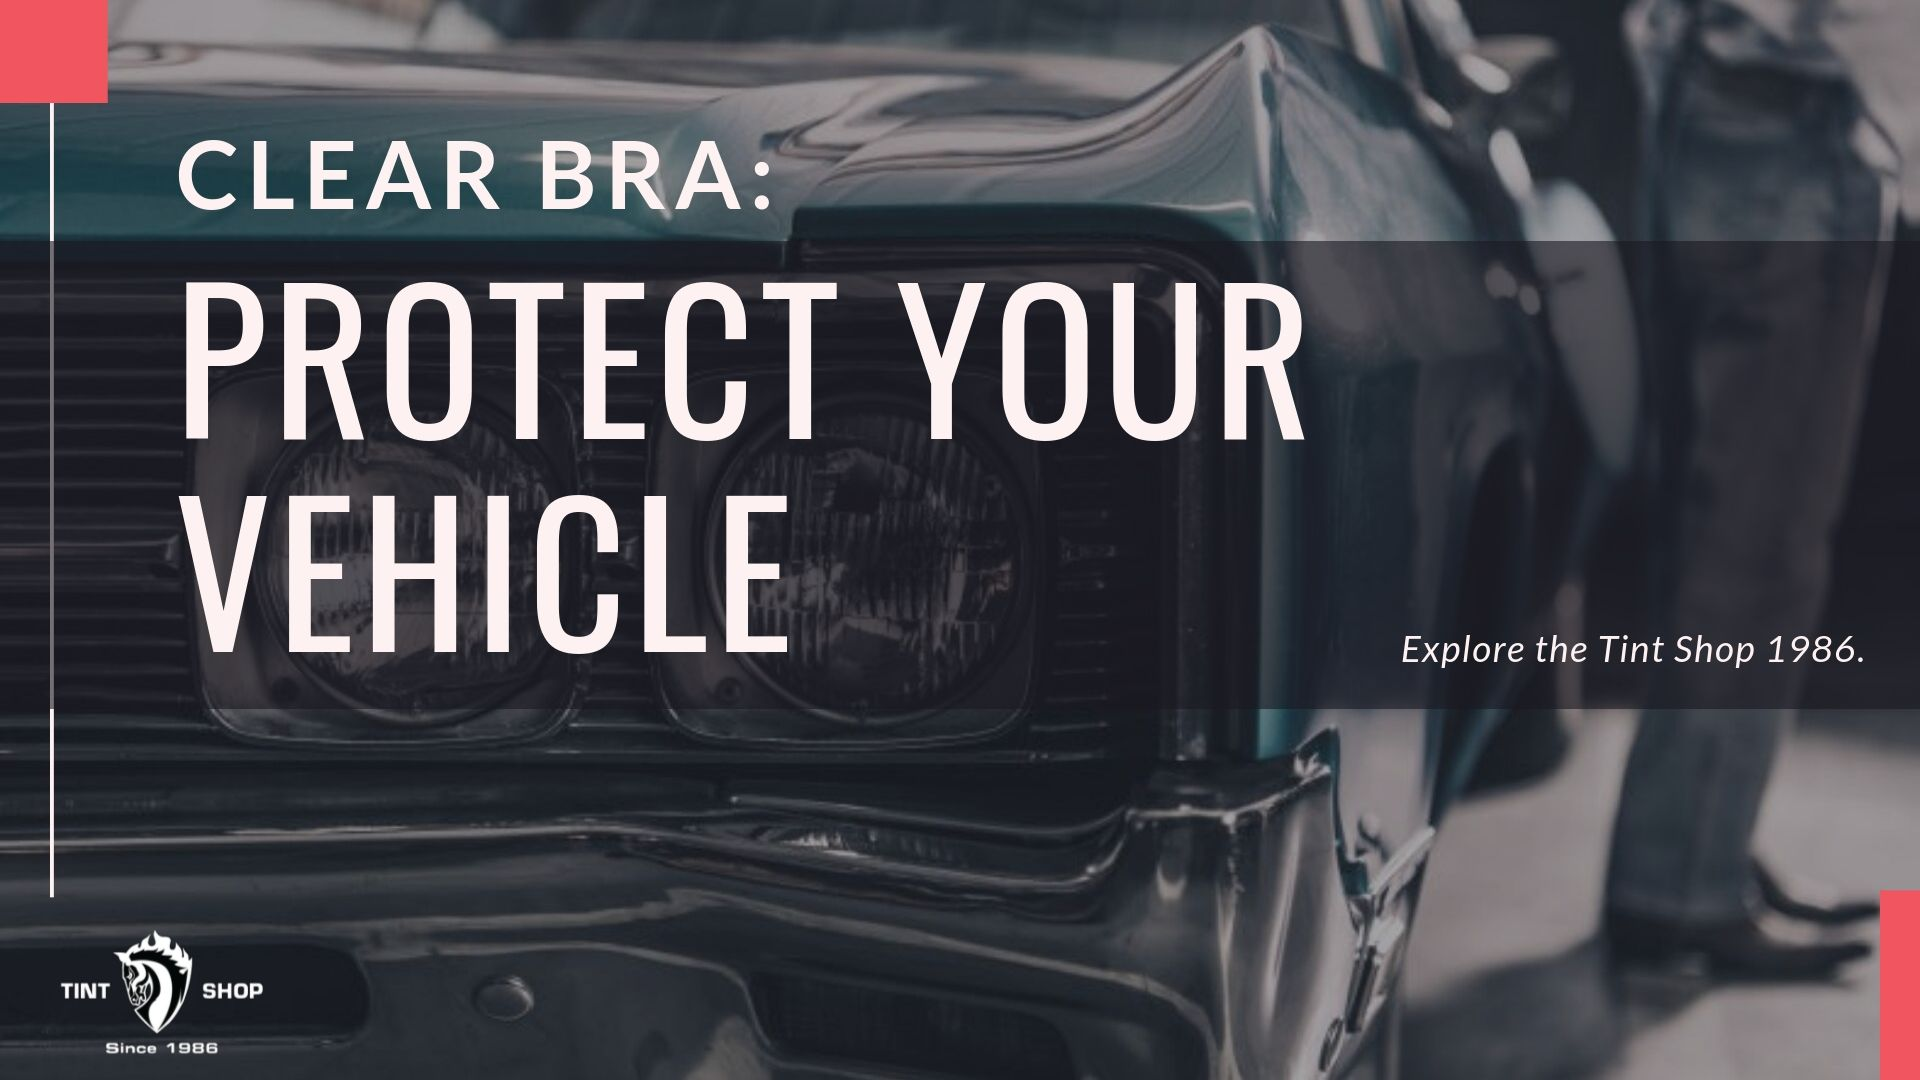 Clear Bra: Protect Your Vehicle